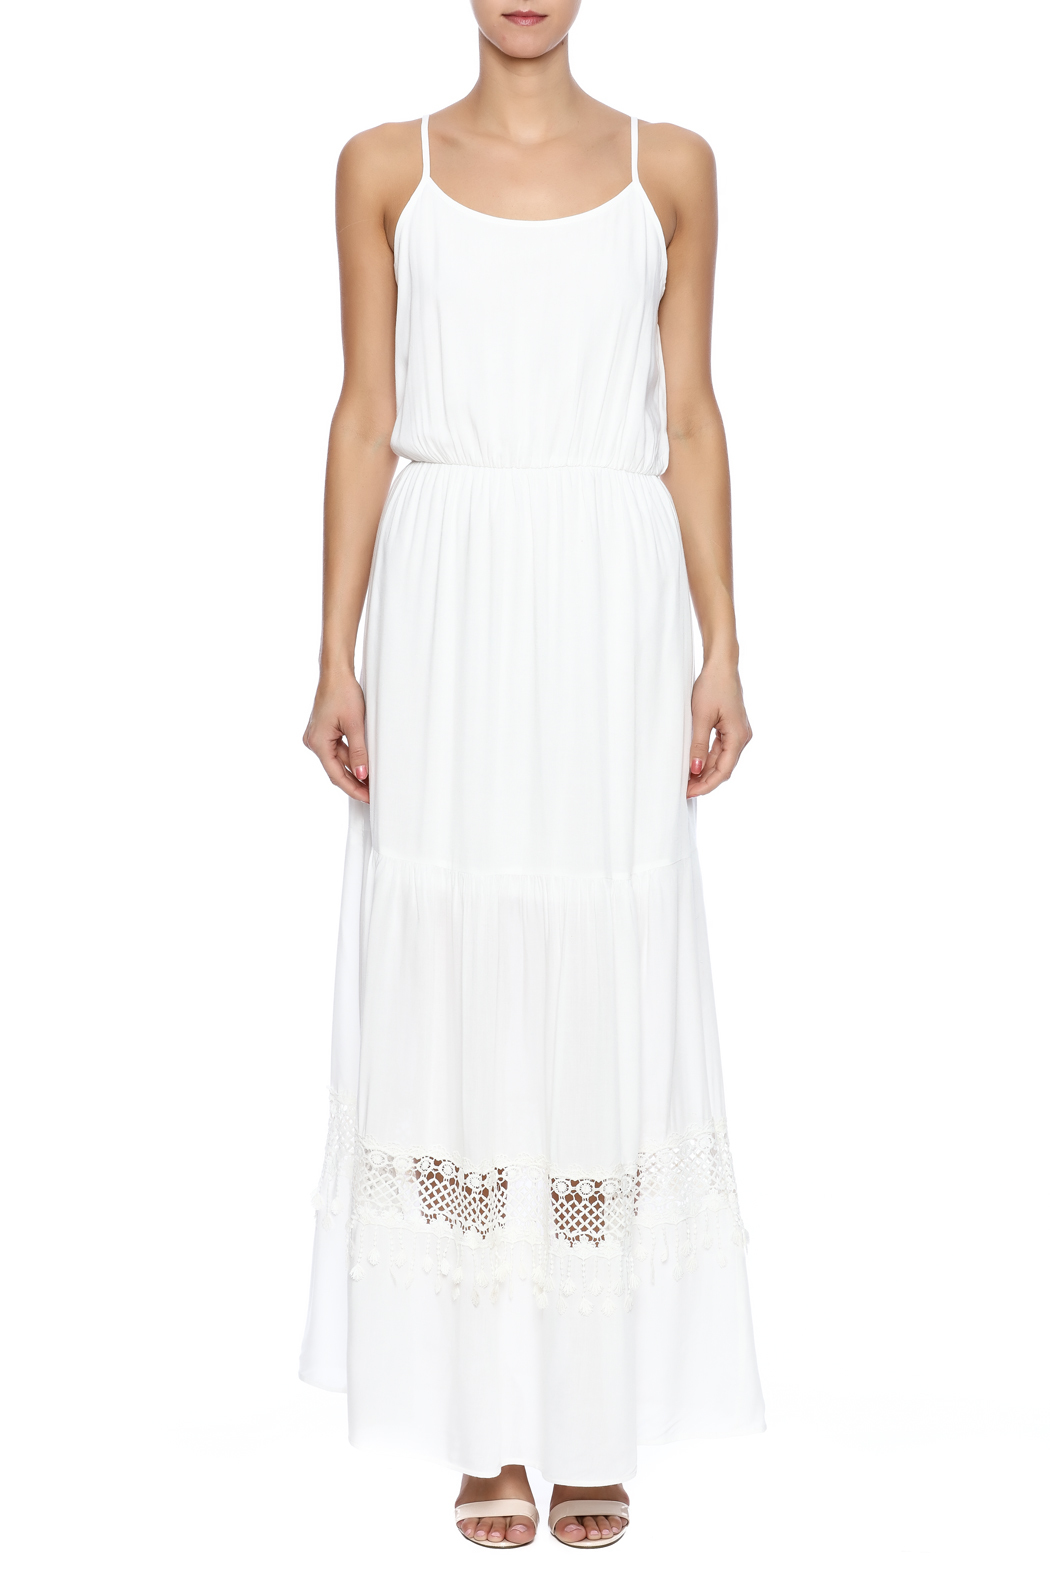 Pink Owl Ivory Maxi Dress - Front Cropped Image